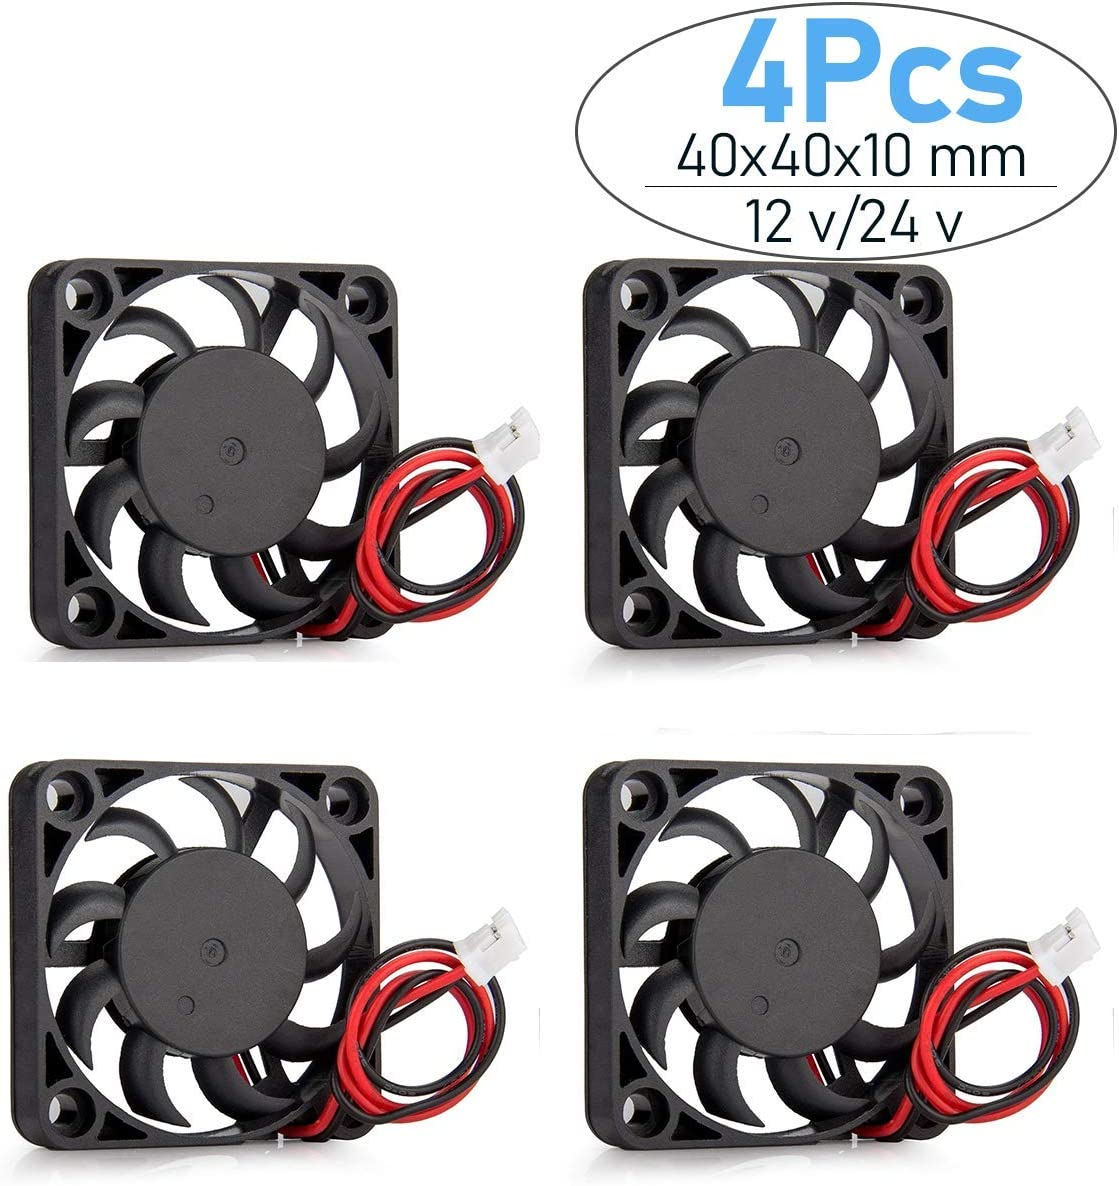 Helonge Cooling Fan,4 Pcs DC 12/24V Small Cooling Fan, 40x40x10mm, with 2 Pin Terminal for 3D Printer, Computer, CPU Chip, and Arduino (24V/0.1A)